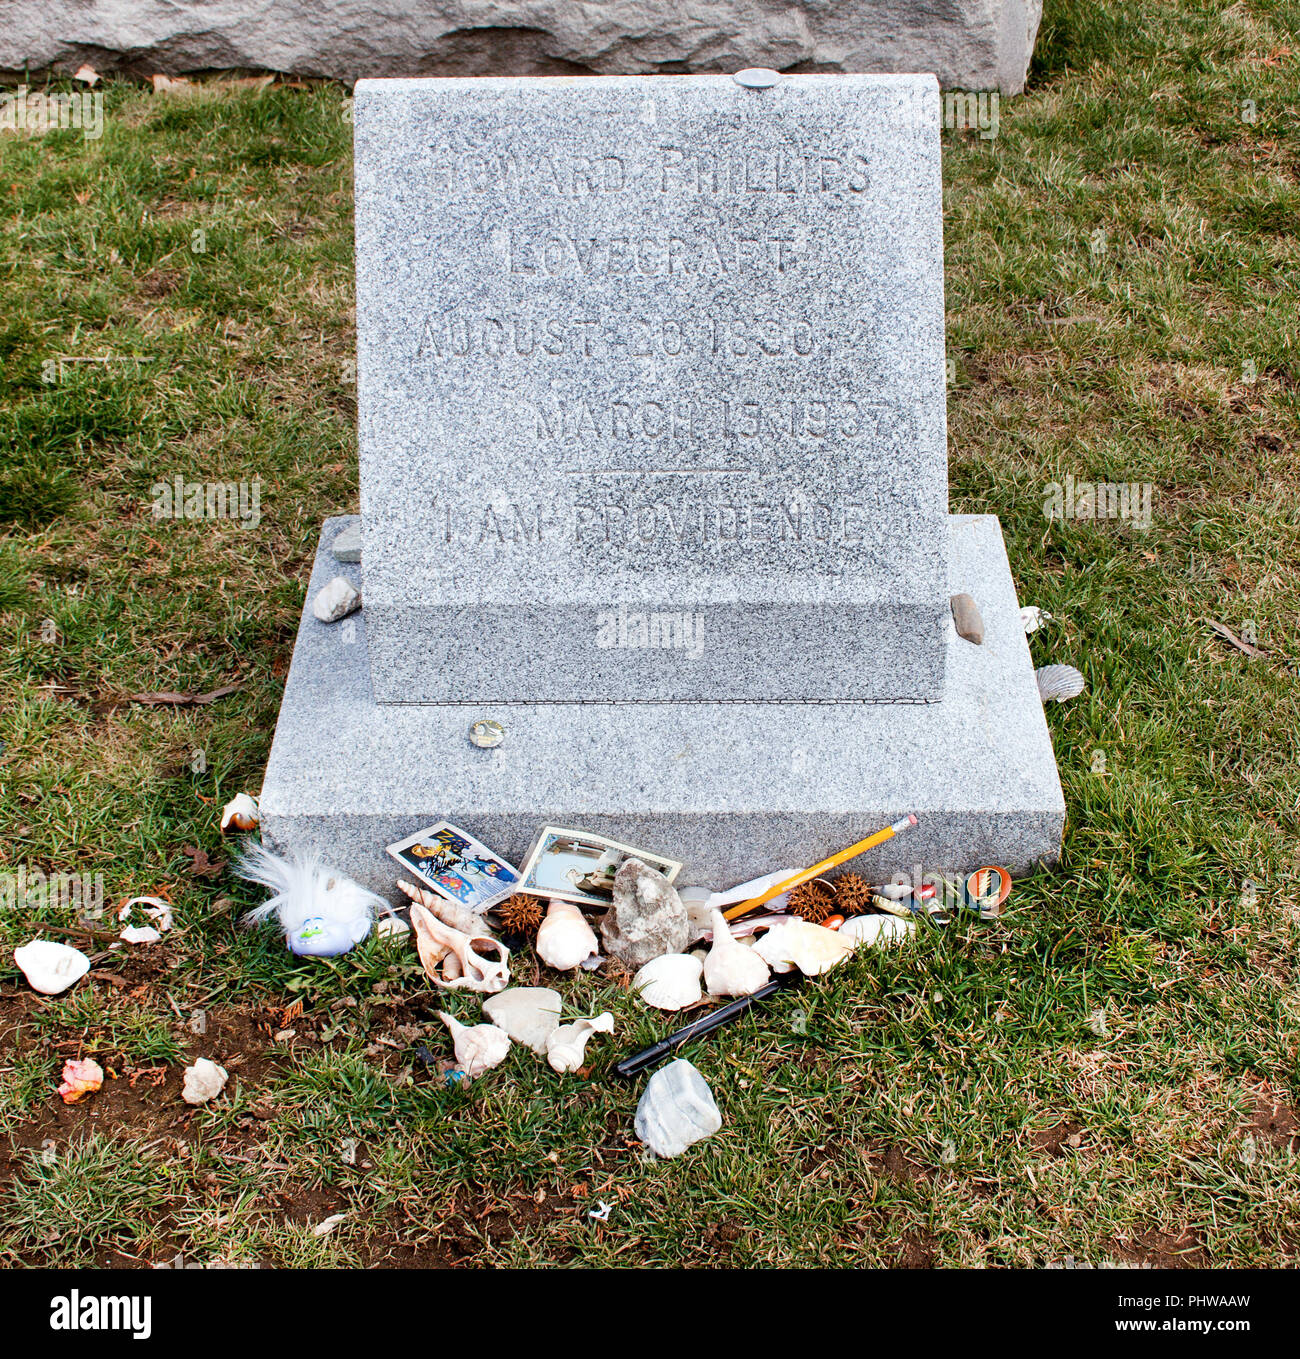 H.P. Lovecraft's Grave in Providence Rhode Island - Stock Image